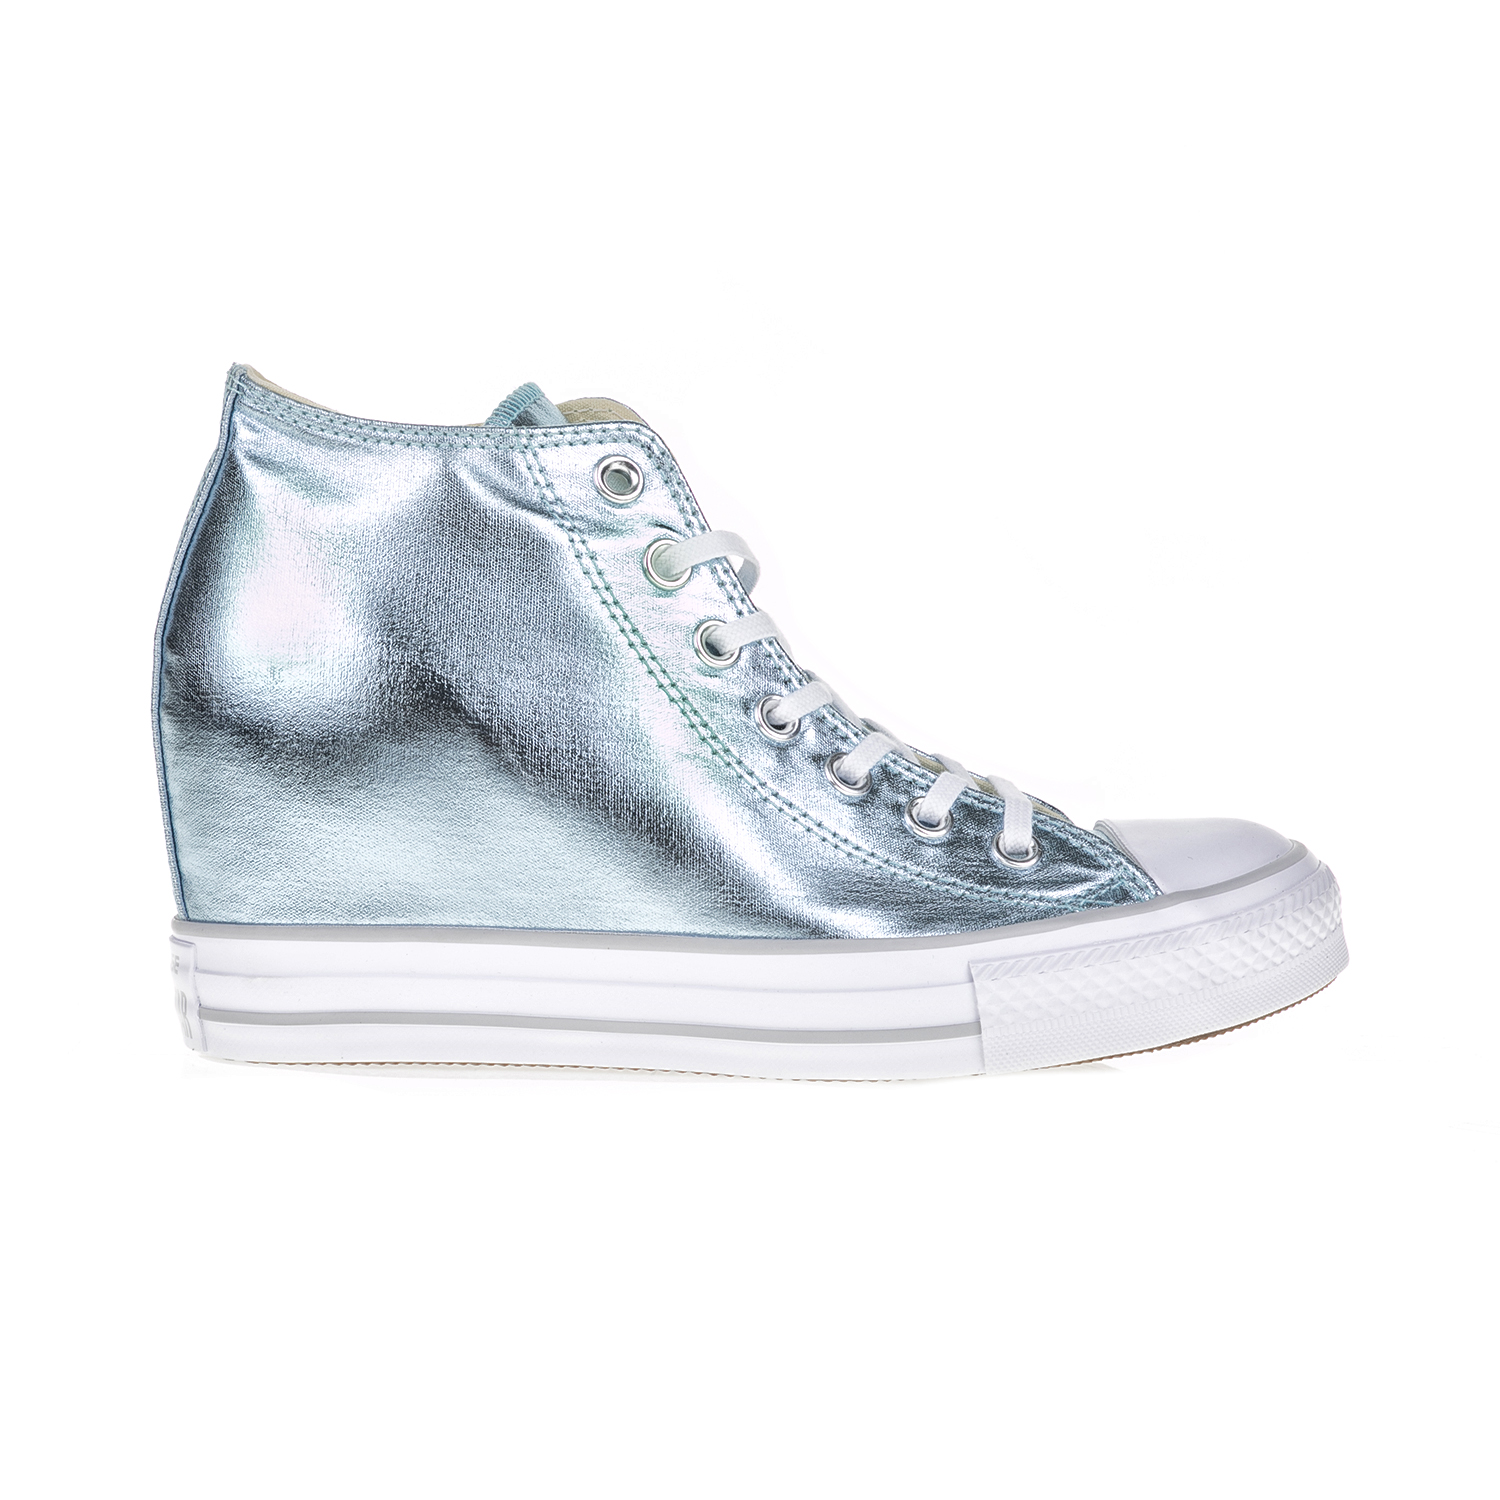 -44% Factory Outlet CONVERSE – Γυναικεία αθλητικά μποτάκια CONVERSE CT AS  Mid Lux μπλε 27391779942